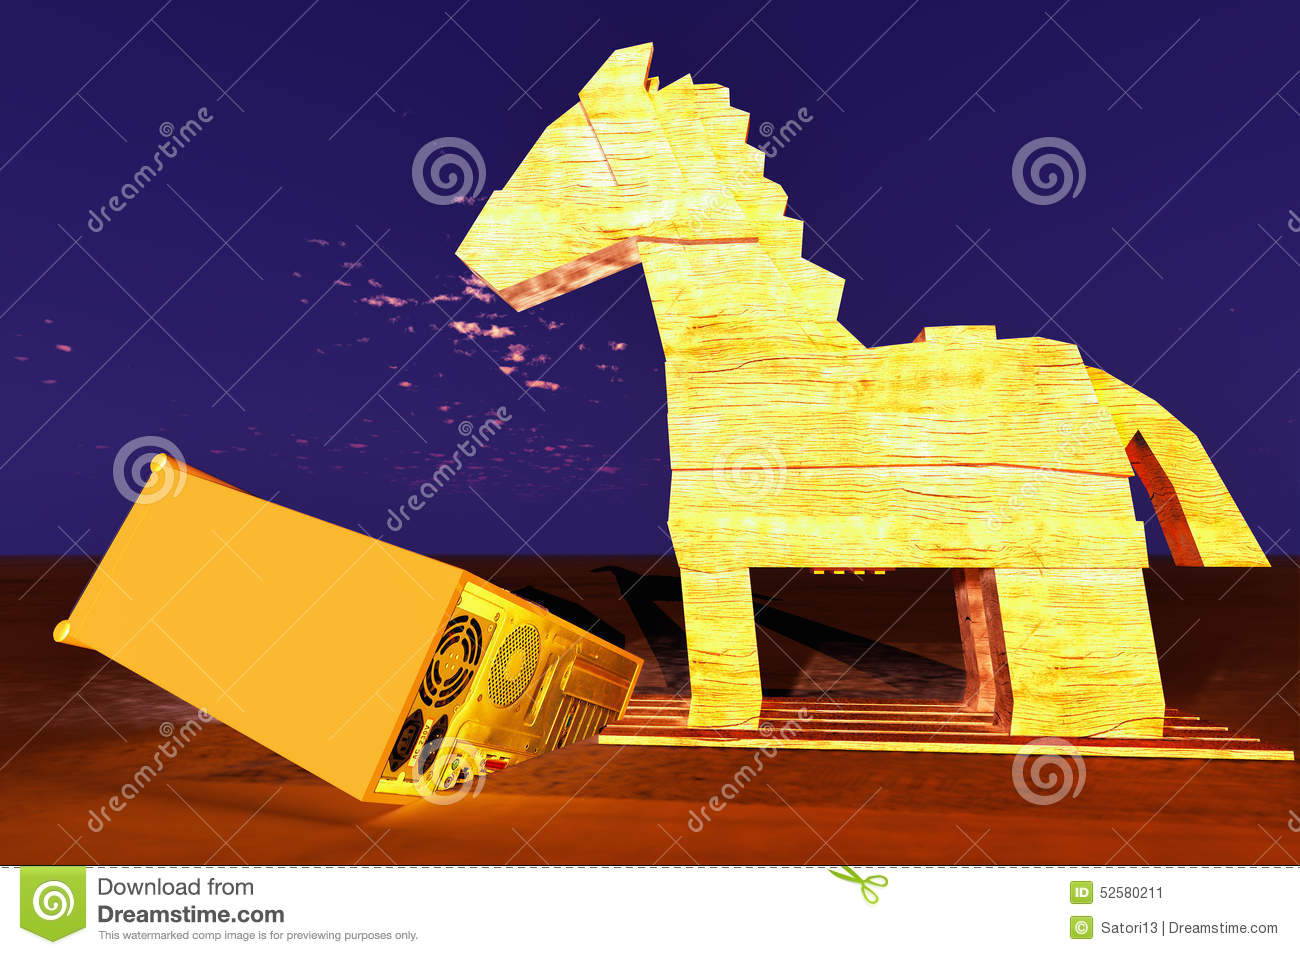 Trojan Horse And Computer Stock Illustration - Image: 52580211